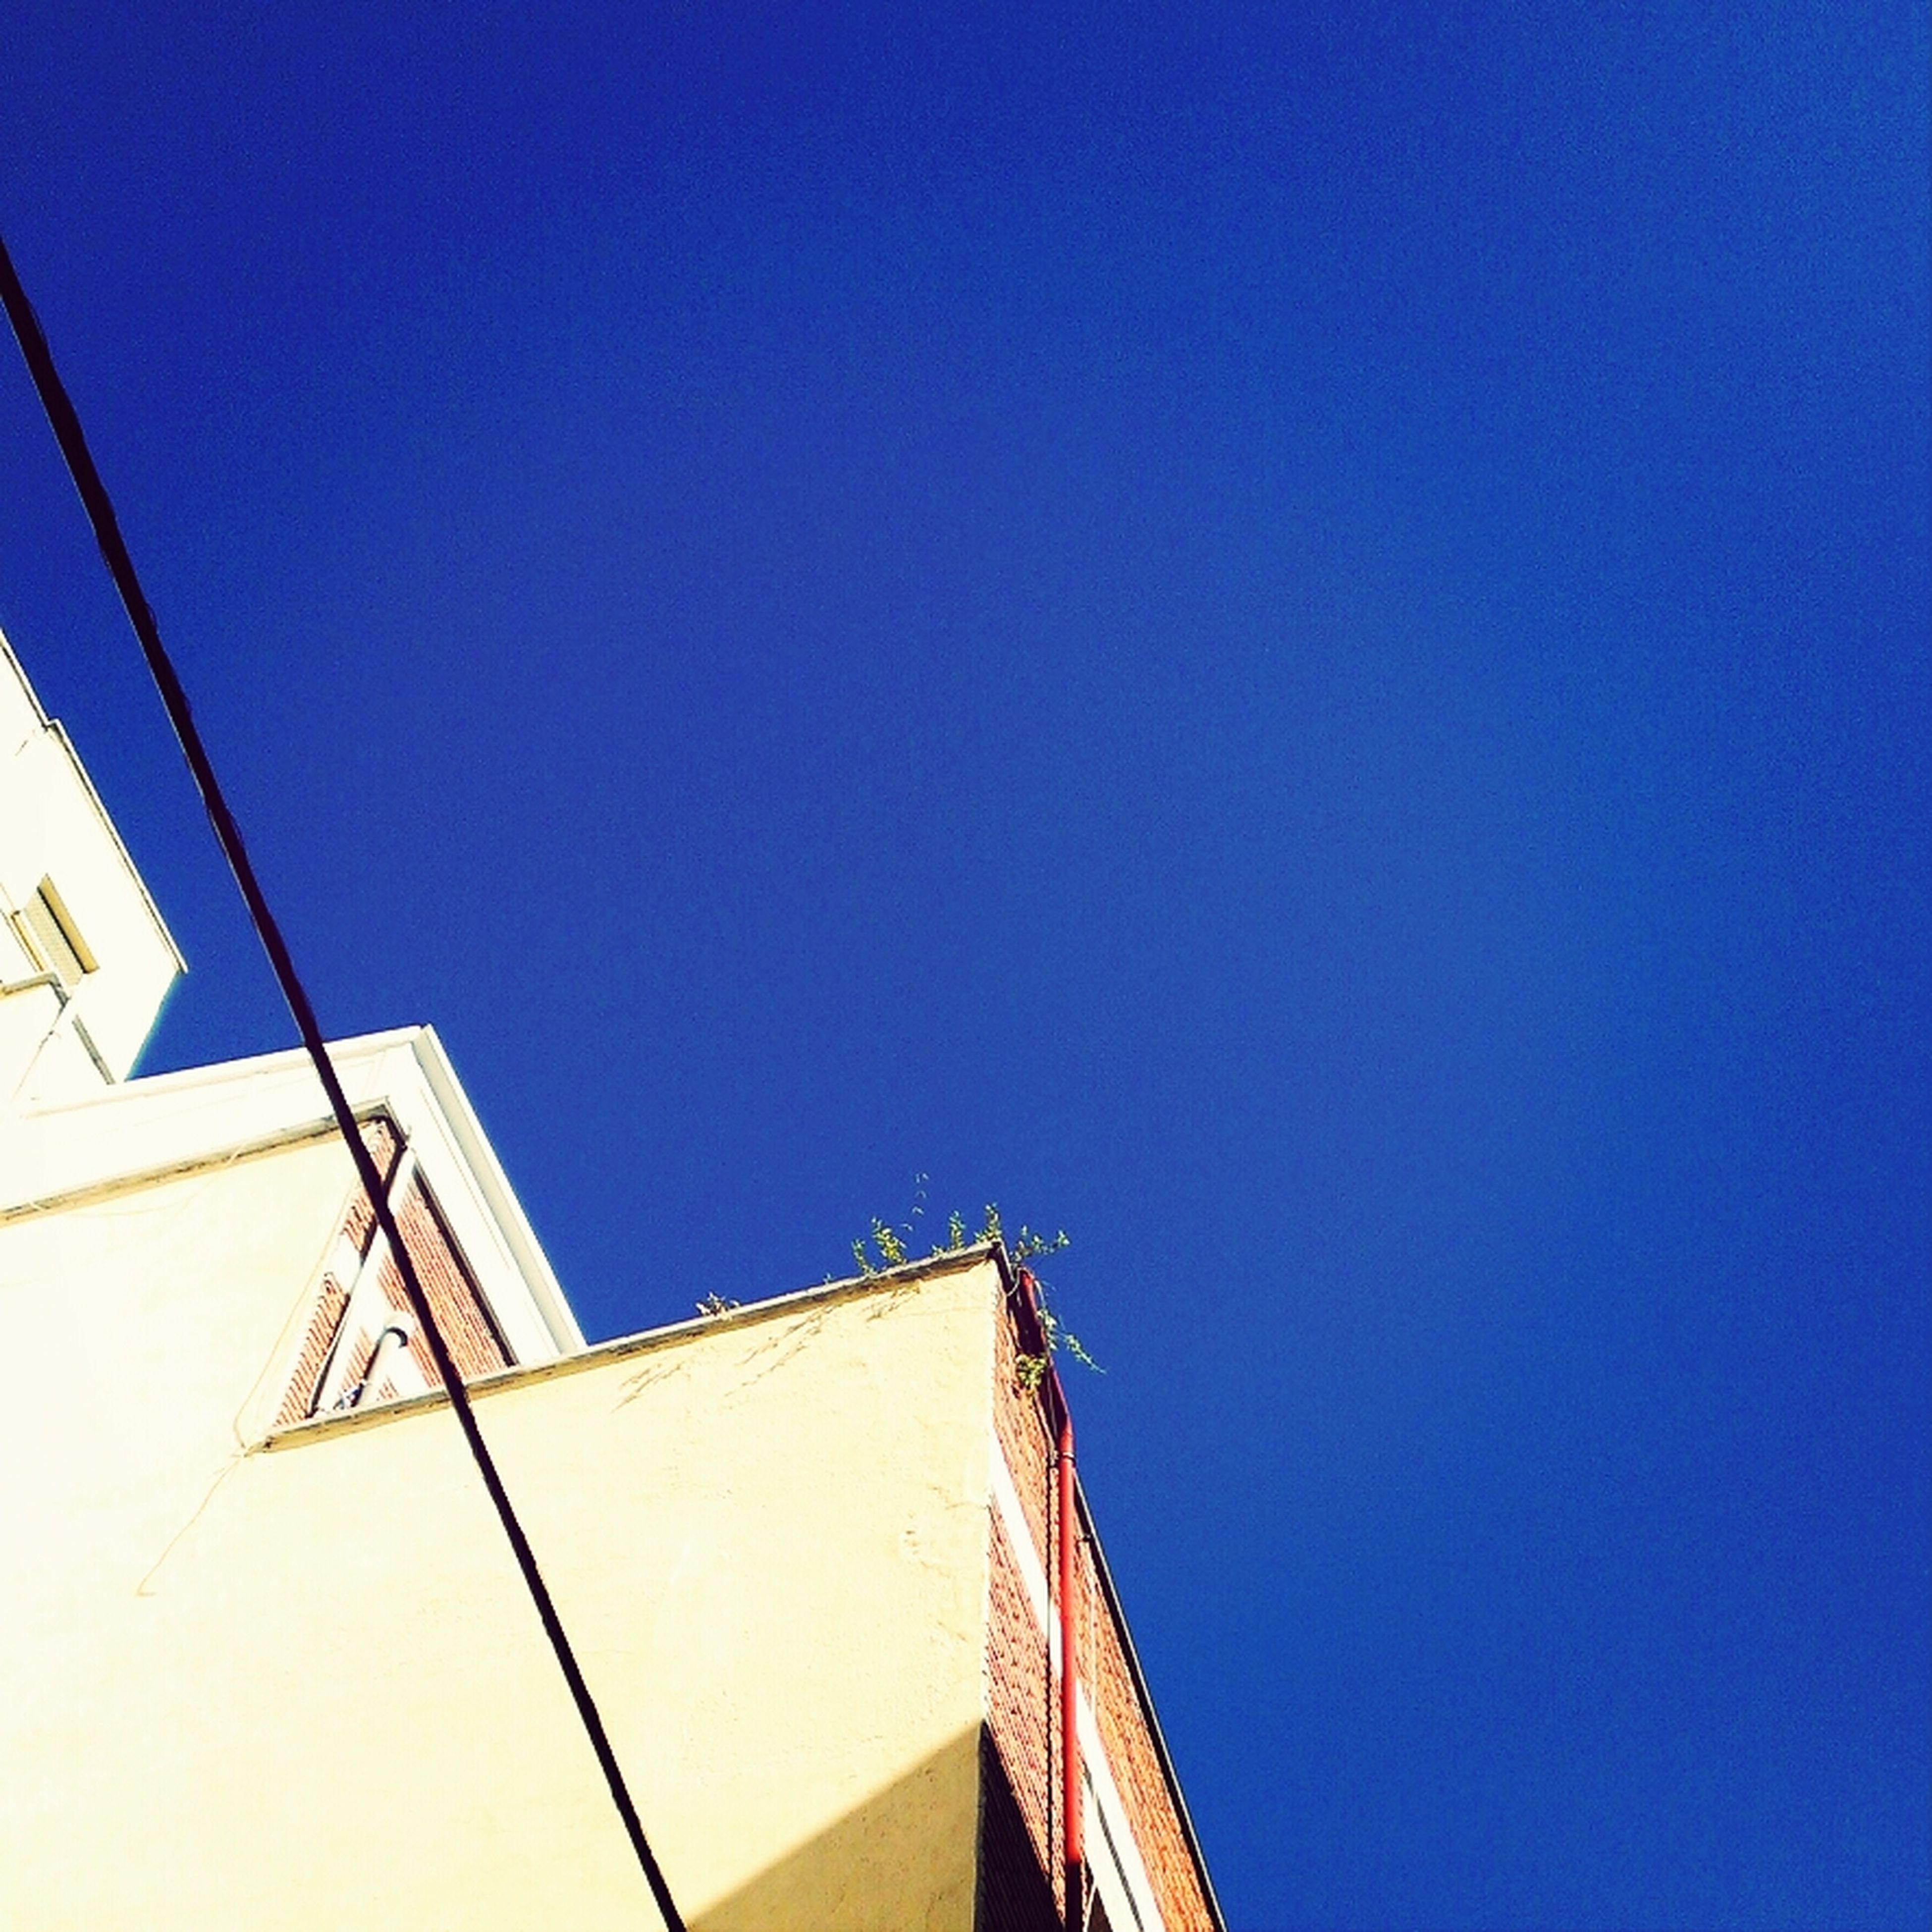 clear sky, architecture, built structure, low angle view, copy space, blue, building exterior, high section, building, outdoors, day, no people, part of, residential structure, roof, sunlight, city, house, wall - building feature, cropped